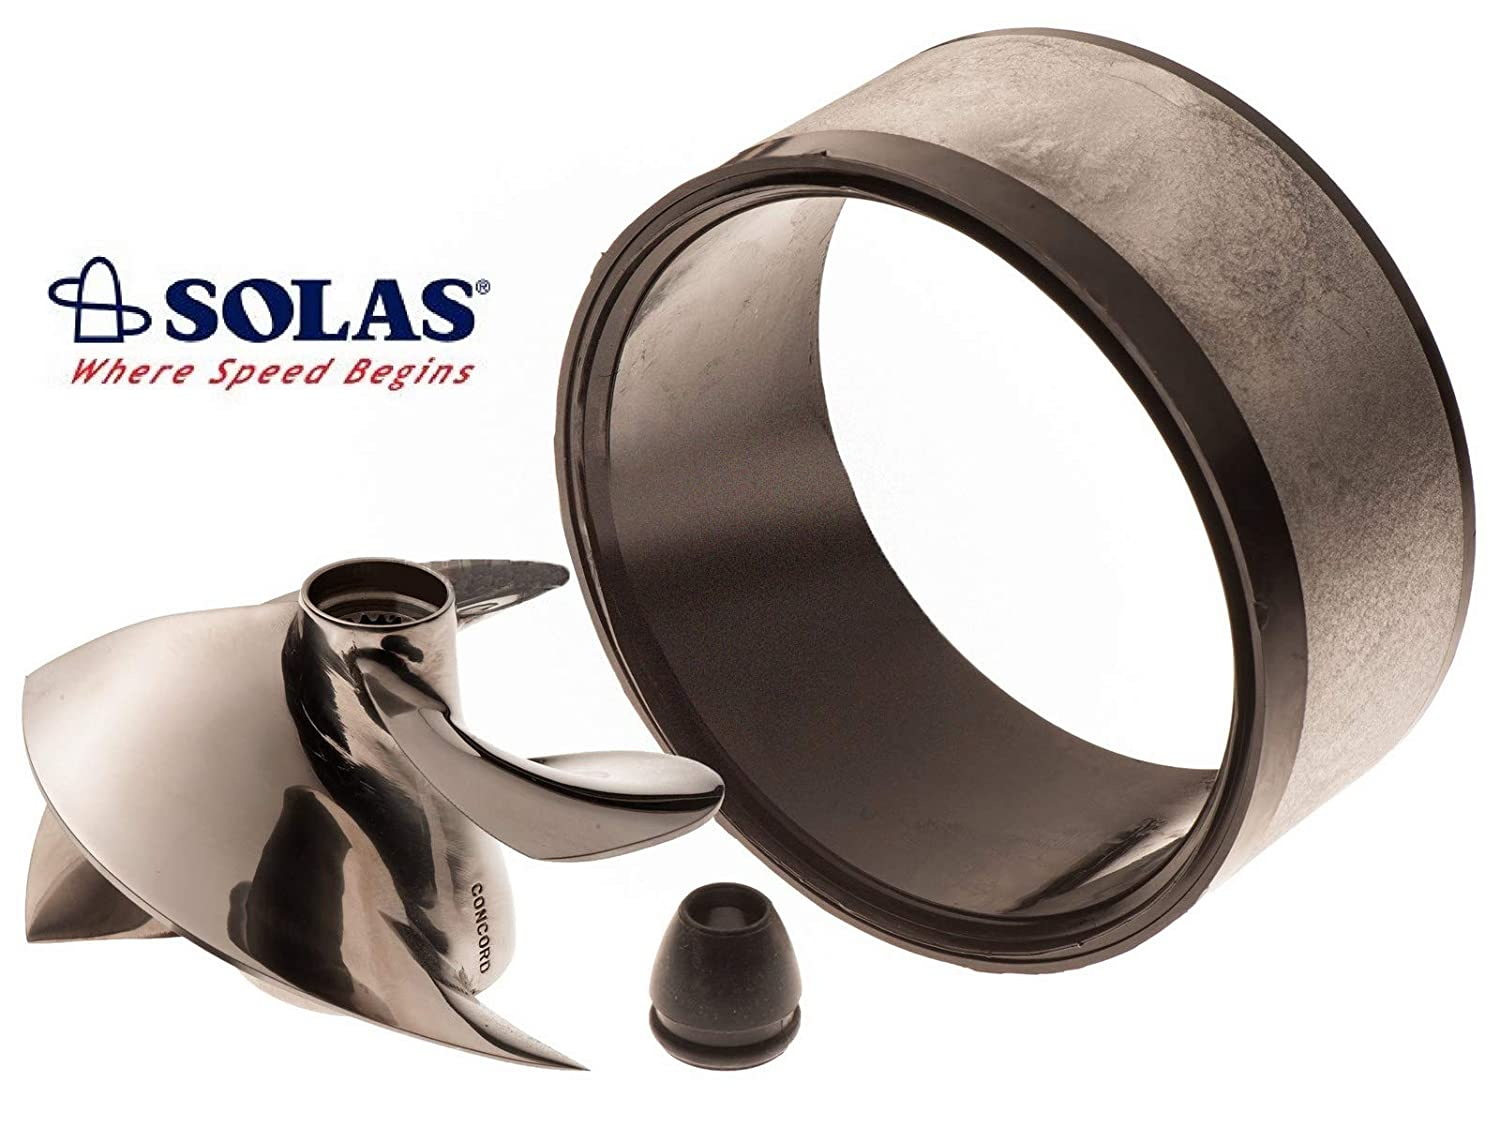 Amazon.com: Solas Sea Doo impulsor sd-cd-15/23 con anillo de ...